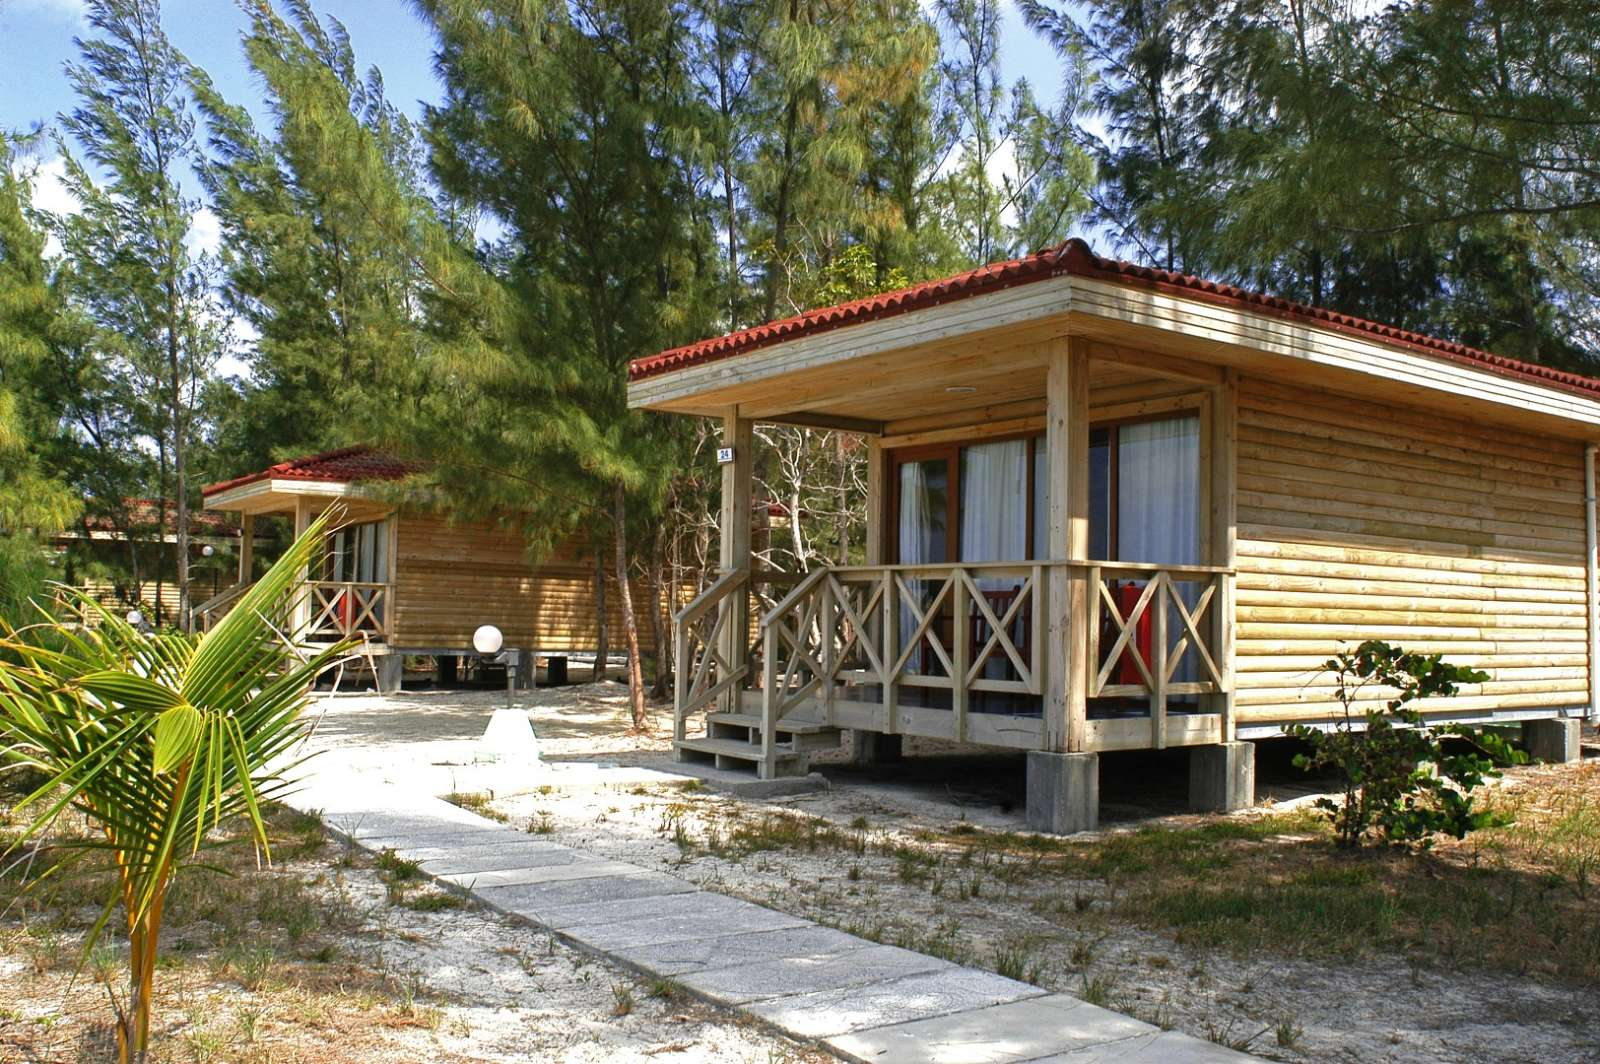 Bungalow at Hotel Cayo Levisa in Cuba